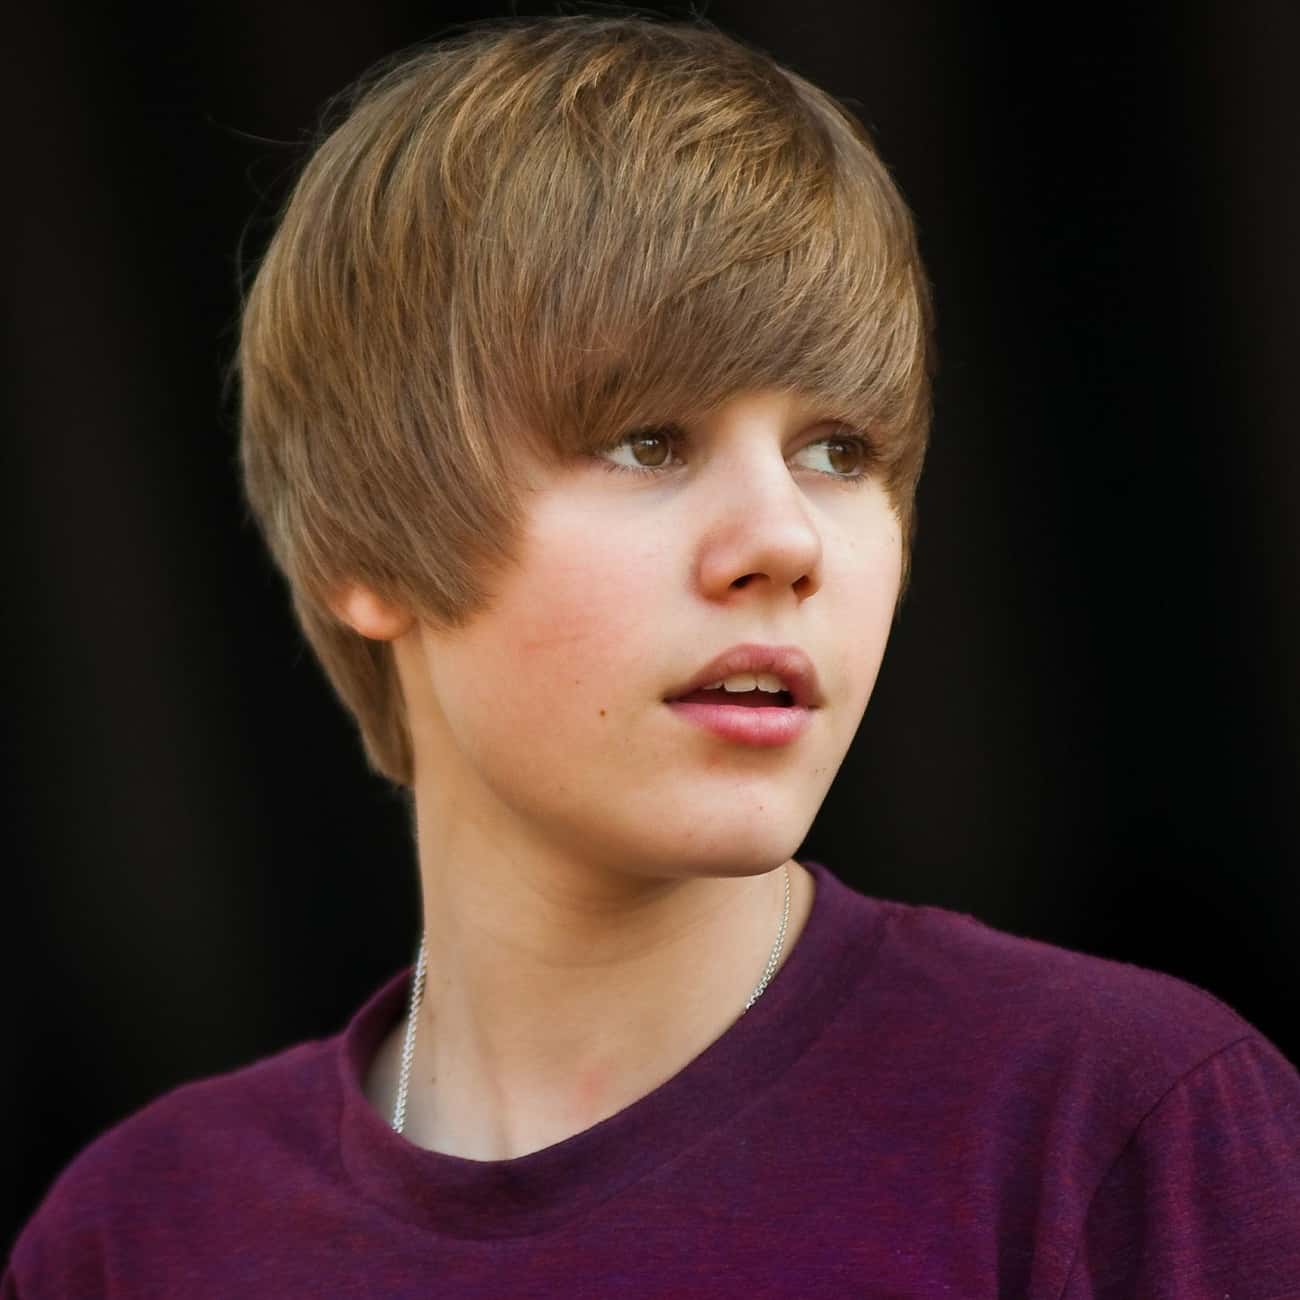 A 14-Year-Old Justin Bieber Talks About Being in the KKK, Uses N-Word and Laughs About It